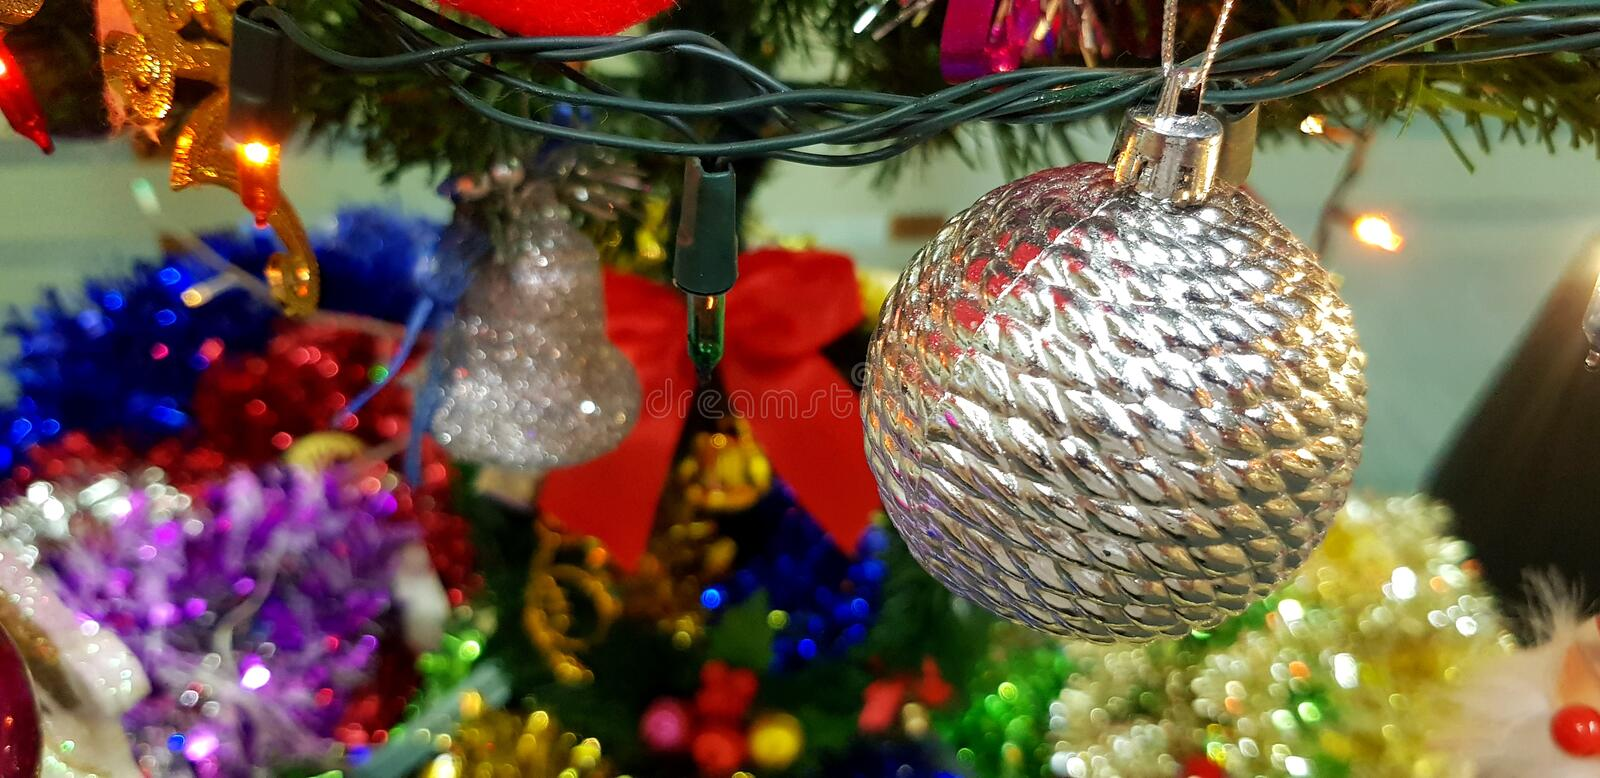 Christmas silver ball decorate on tree with light background for celebration festival and party for background royalty free stock images